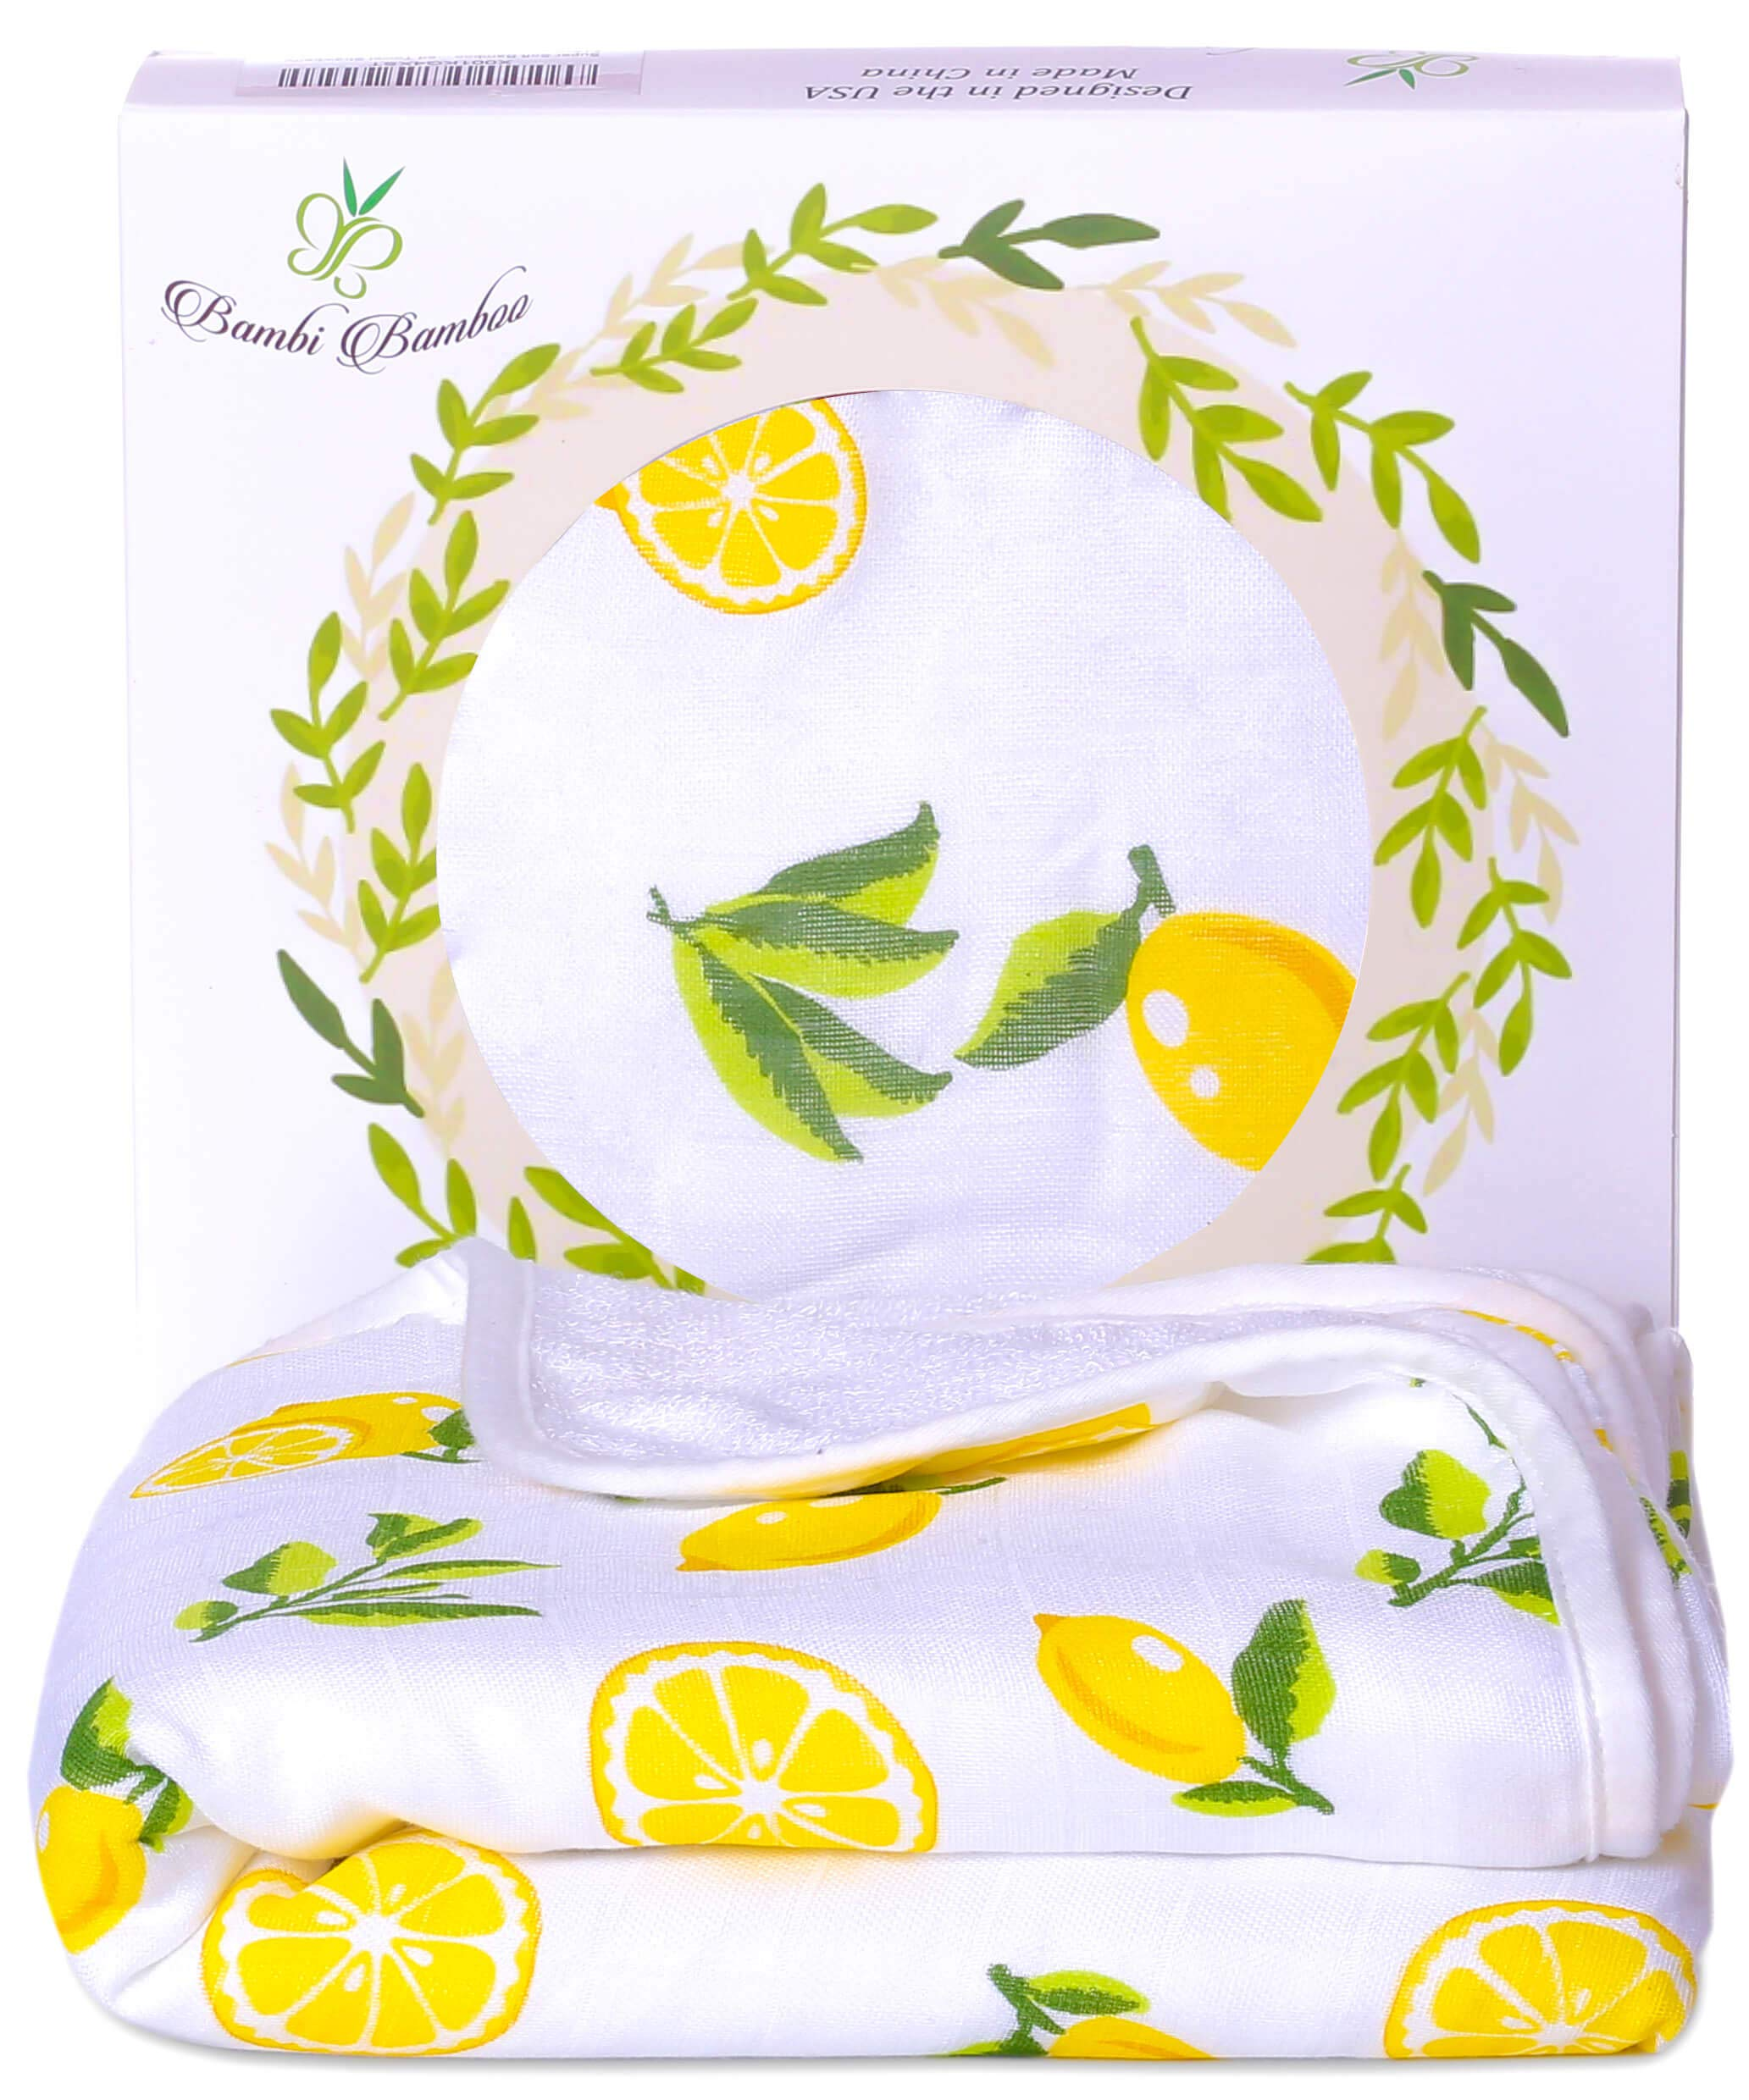 Bambi Bamboo Hooded Baby Bath Towel - Luxury Spa Super Soft for Sensitive Skin - Lemon, 2 Layers, Reversible - Absorbent, Keep Dry&Warm-Antibacterial,Hypoallergenic- Your Shower Registry Gift by Bambi Bamboo